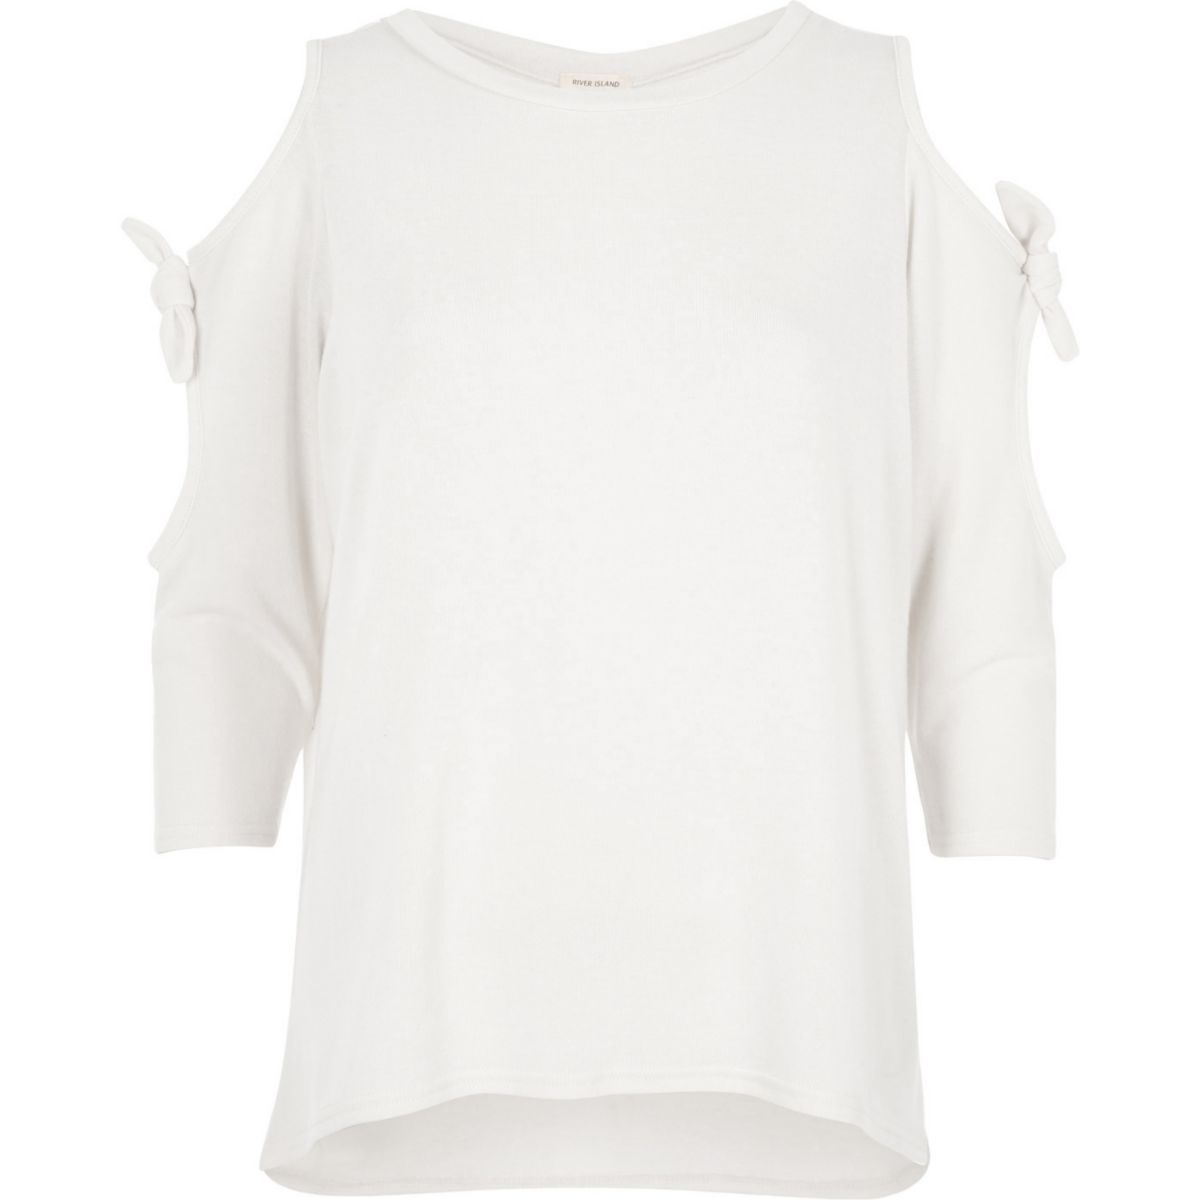 White tie sleeve cut out top